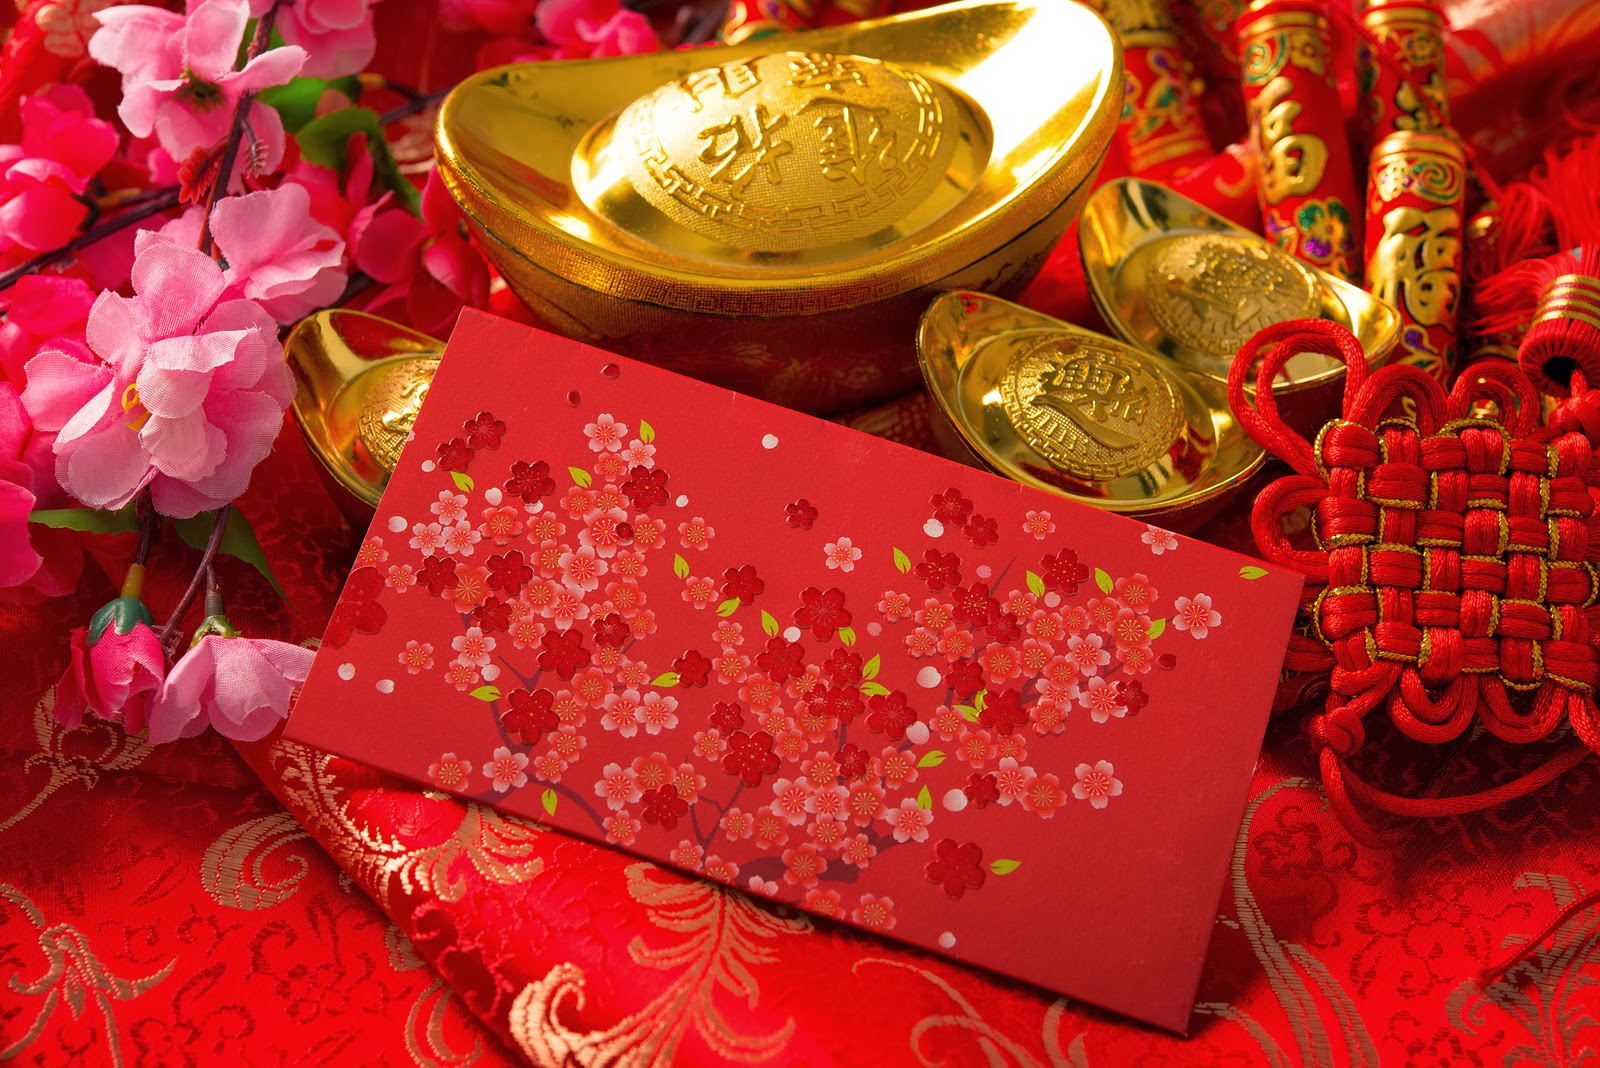 Happy Chinese New Year 2015 Wallpaper Wide 13215: Chinese New Years Wallpaper Iphone 2015 #12784 Wallpaper